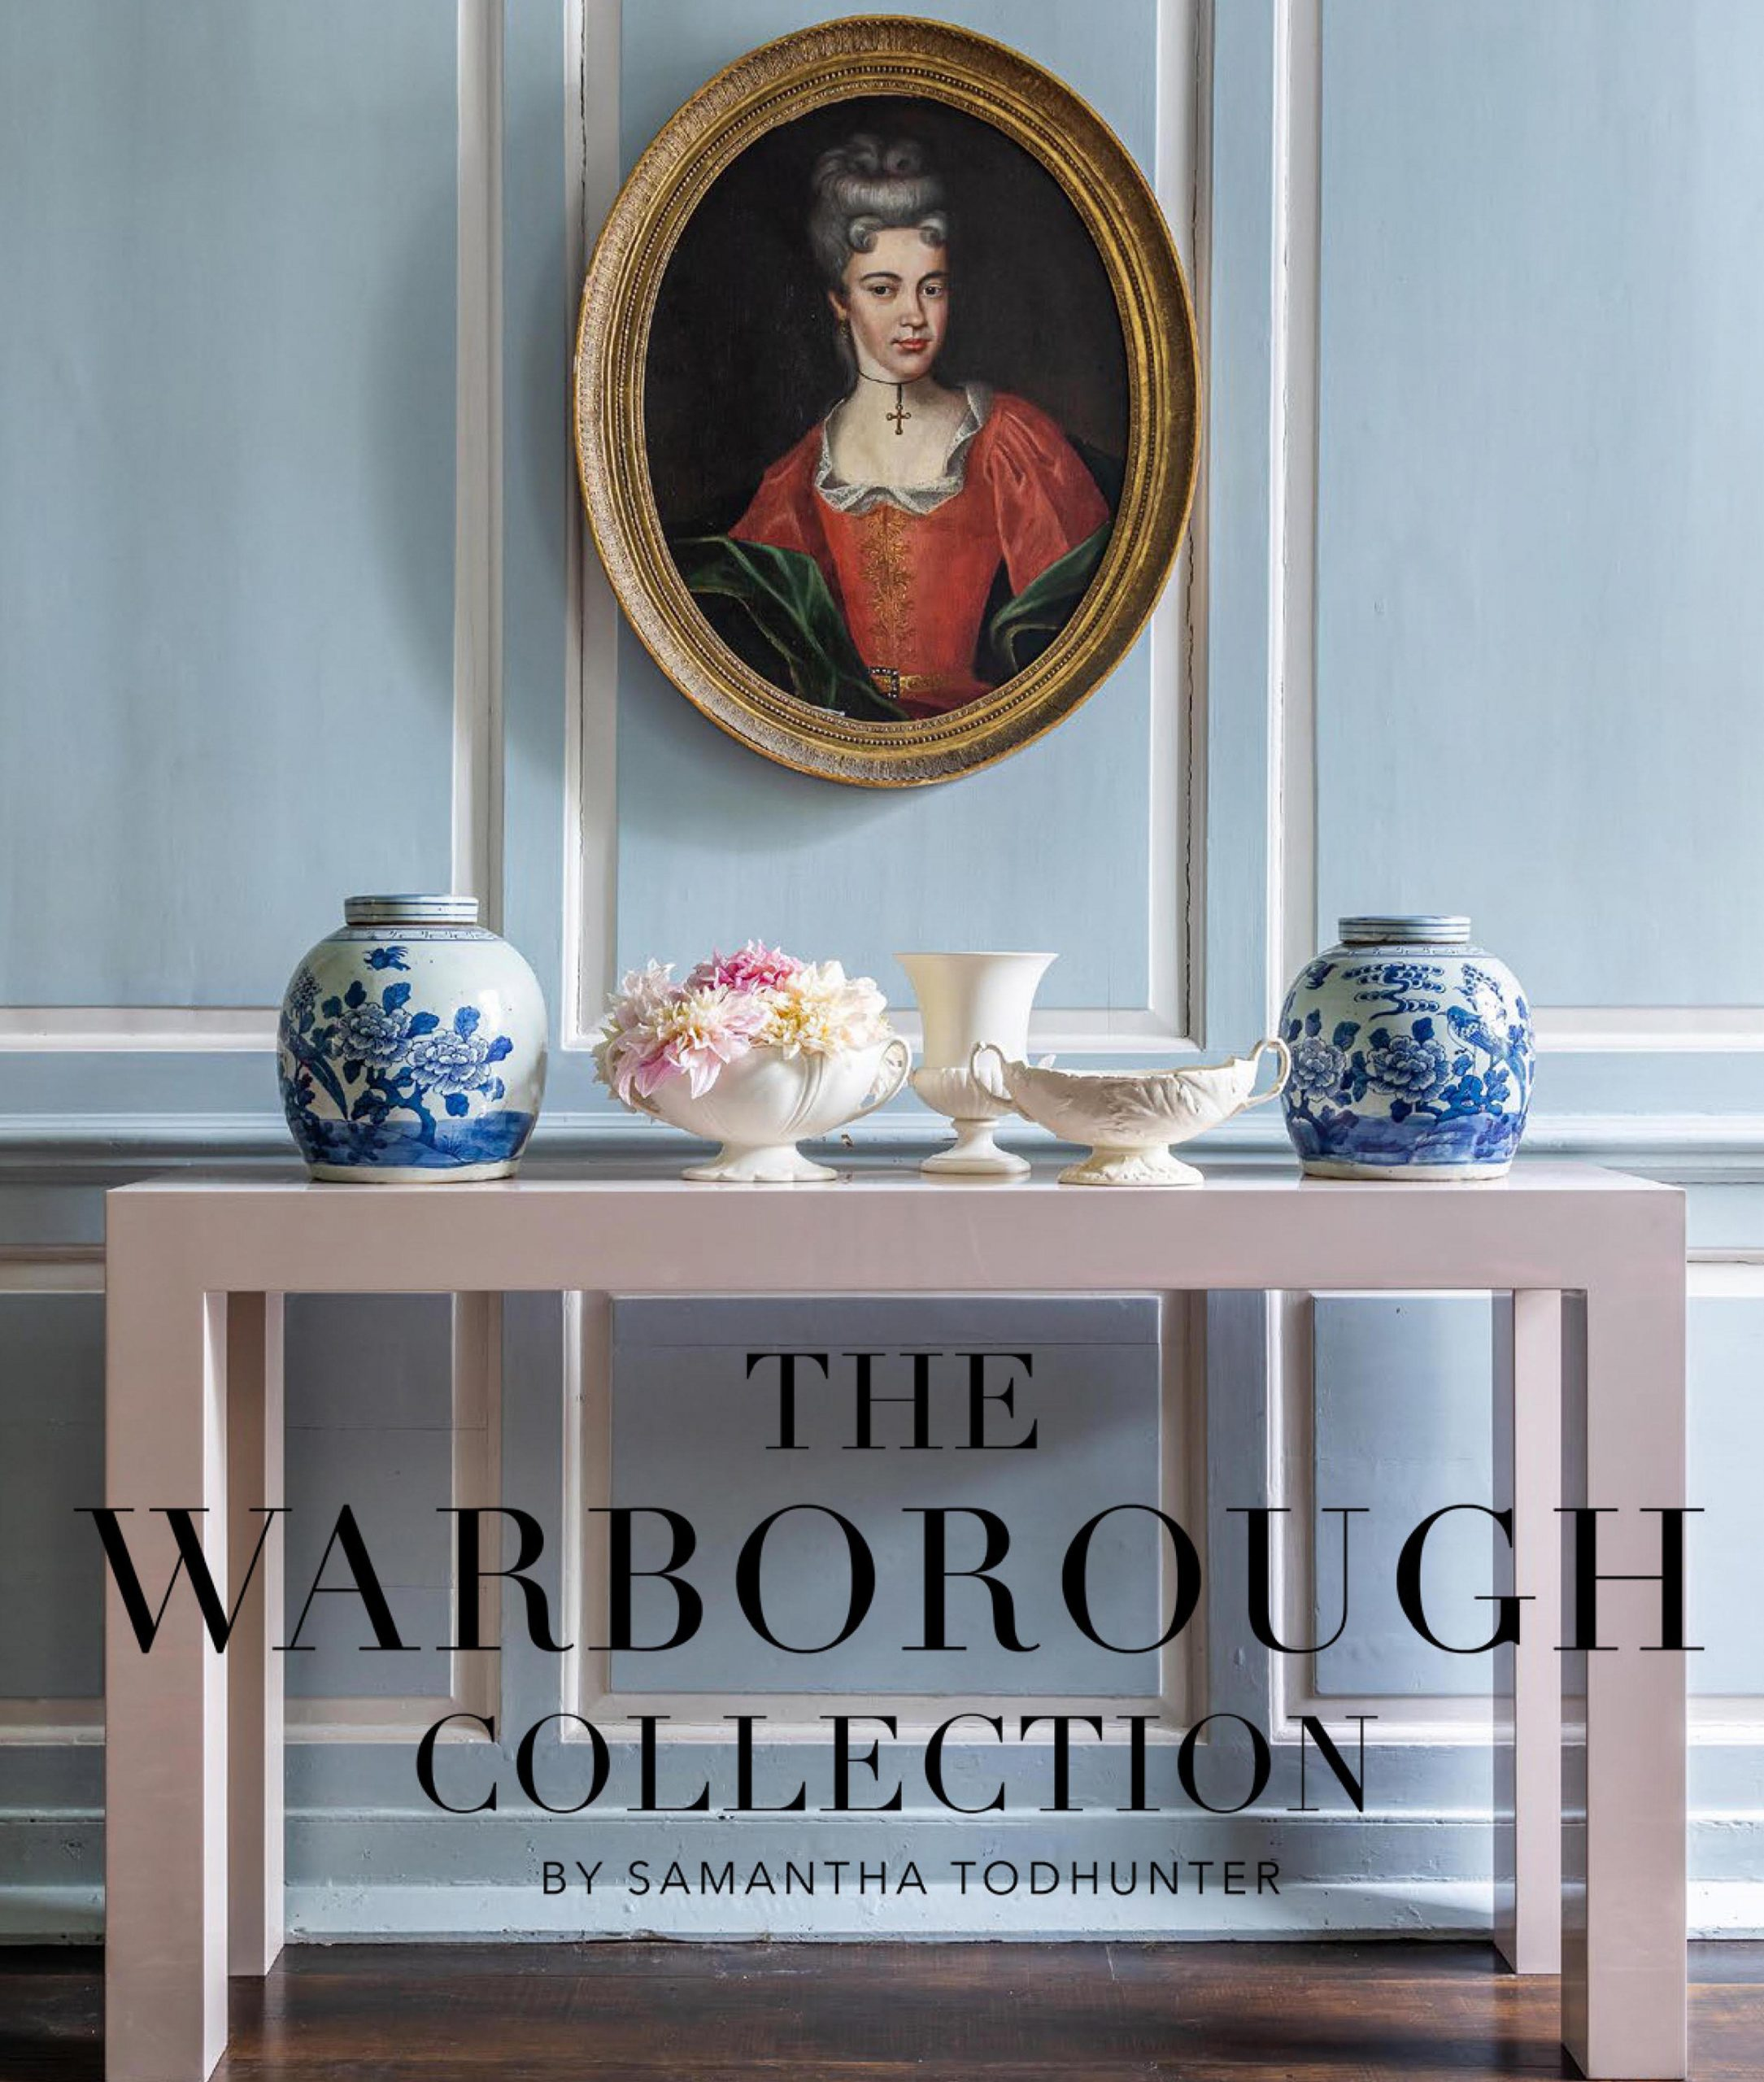 The Warborough Collection